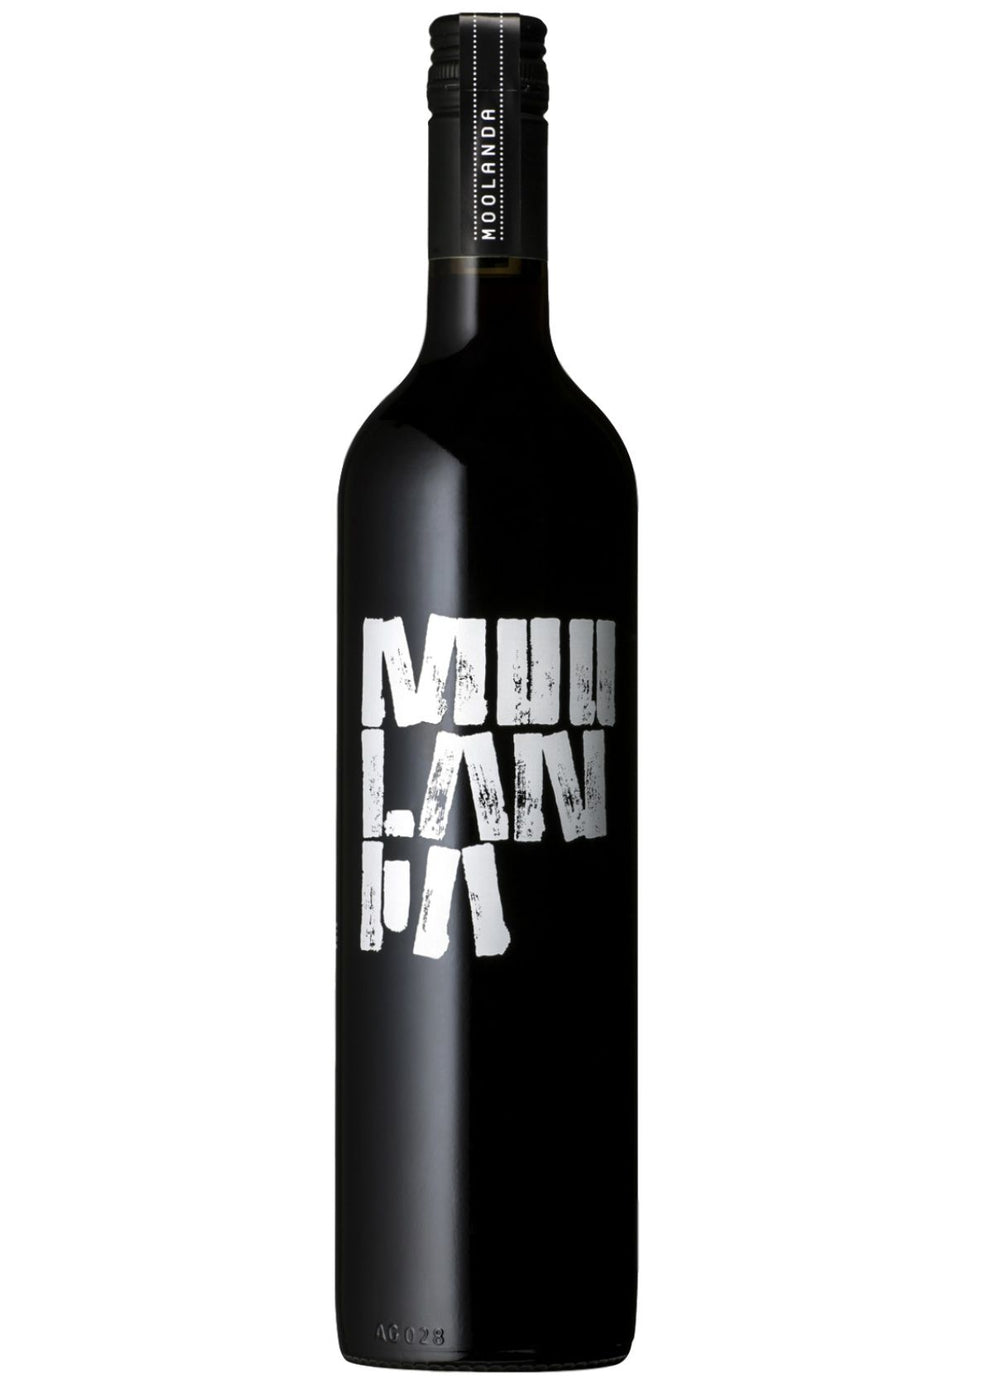 Moolanda - Shattered Rock Shiraz 2012